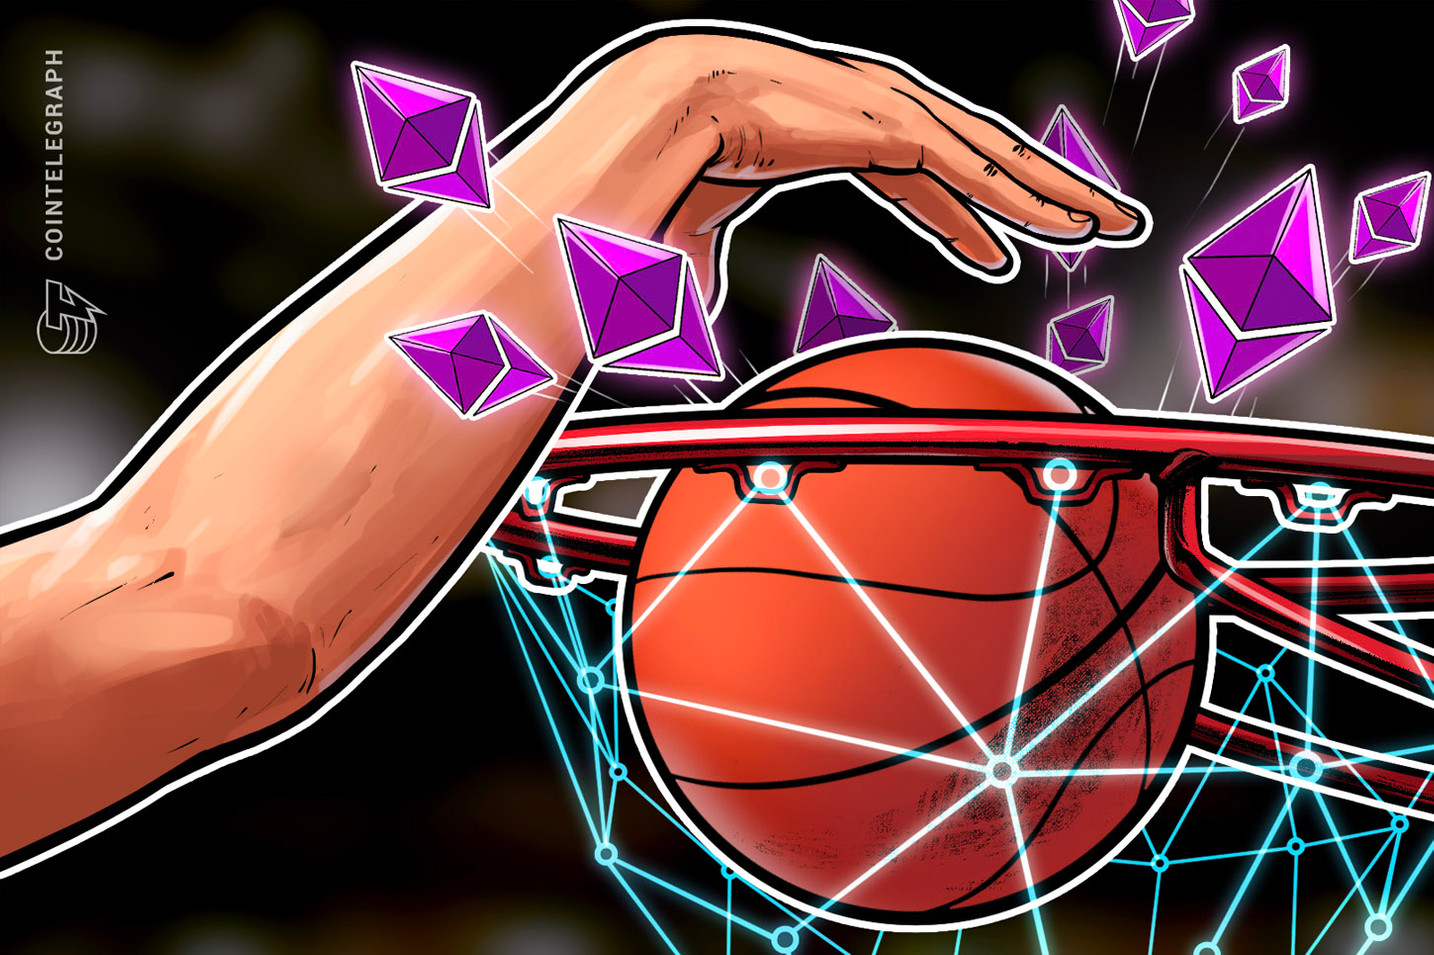 Basketball Team Sacramento Kings Mine Ethereum to Fund Tech Education Scholarships